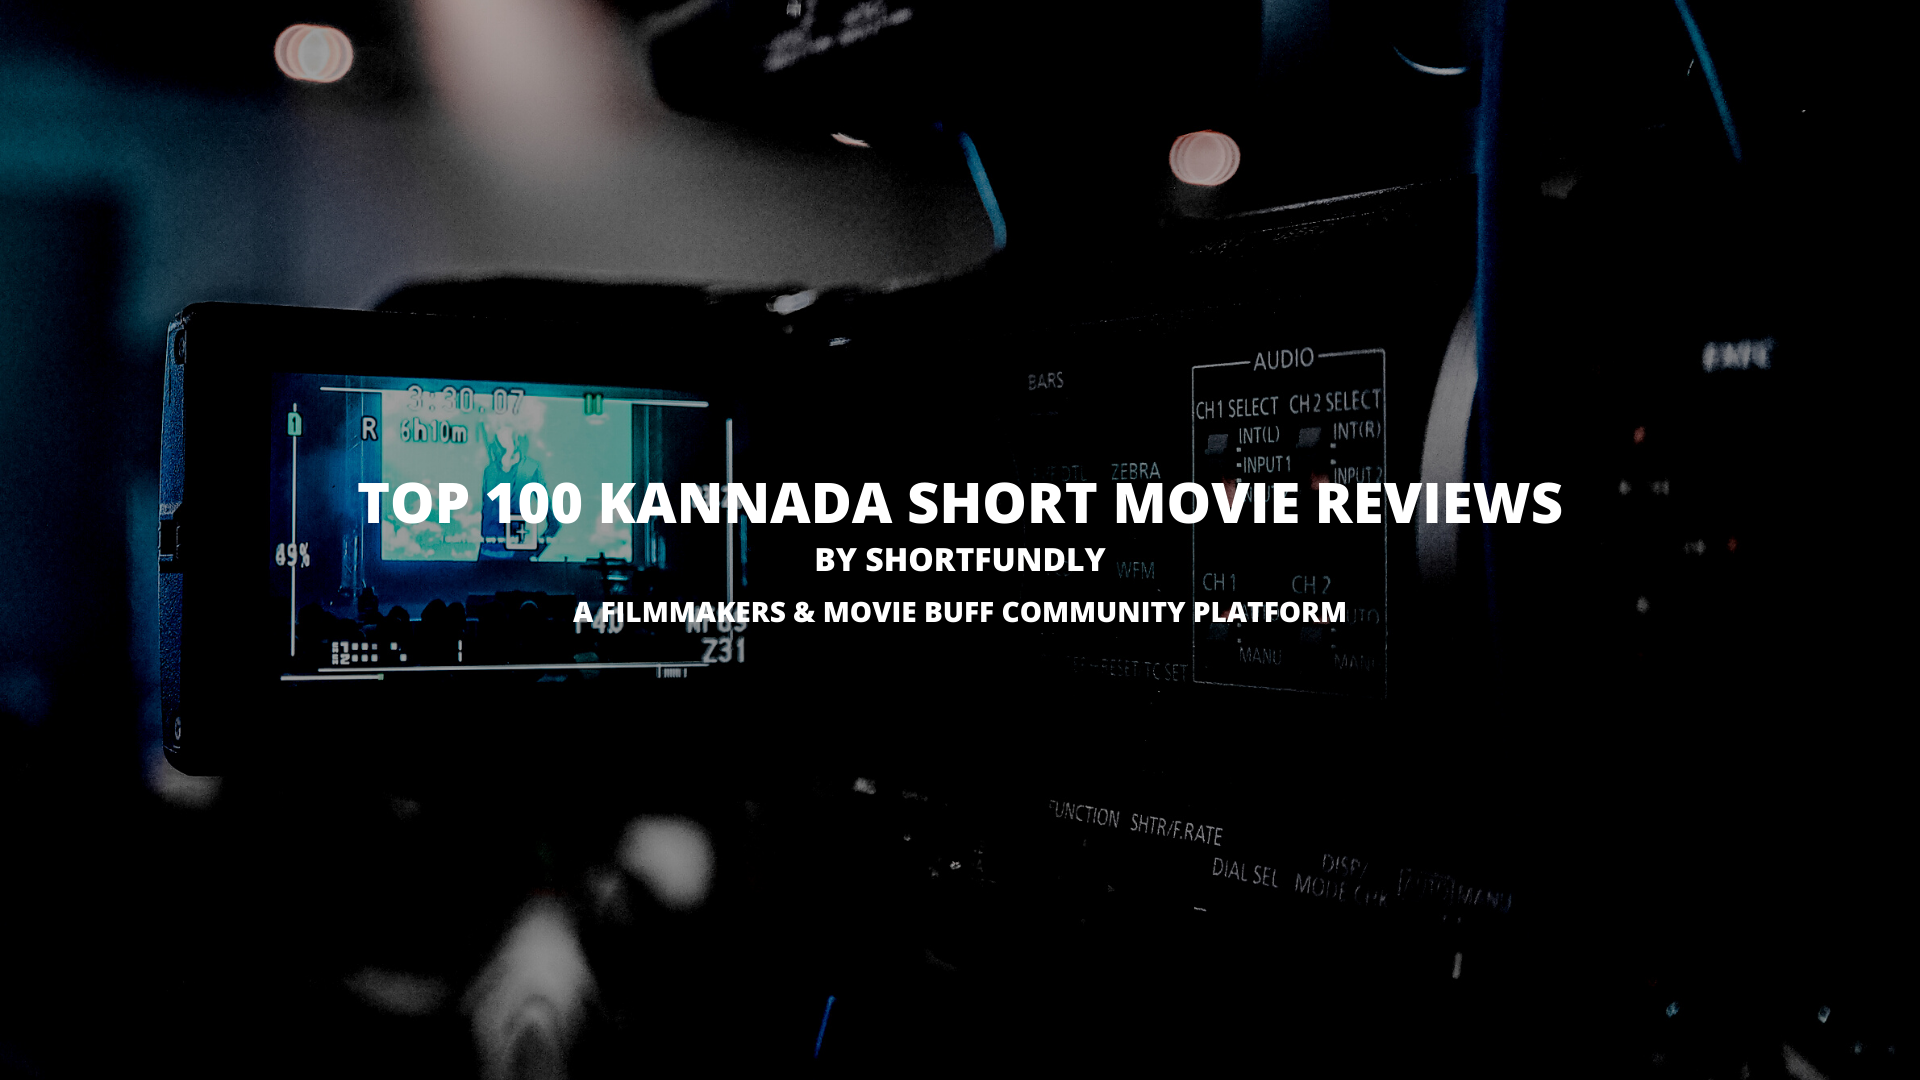 Top 100 Kannada short movie reviews